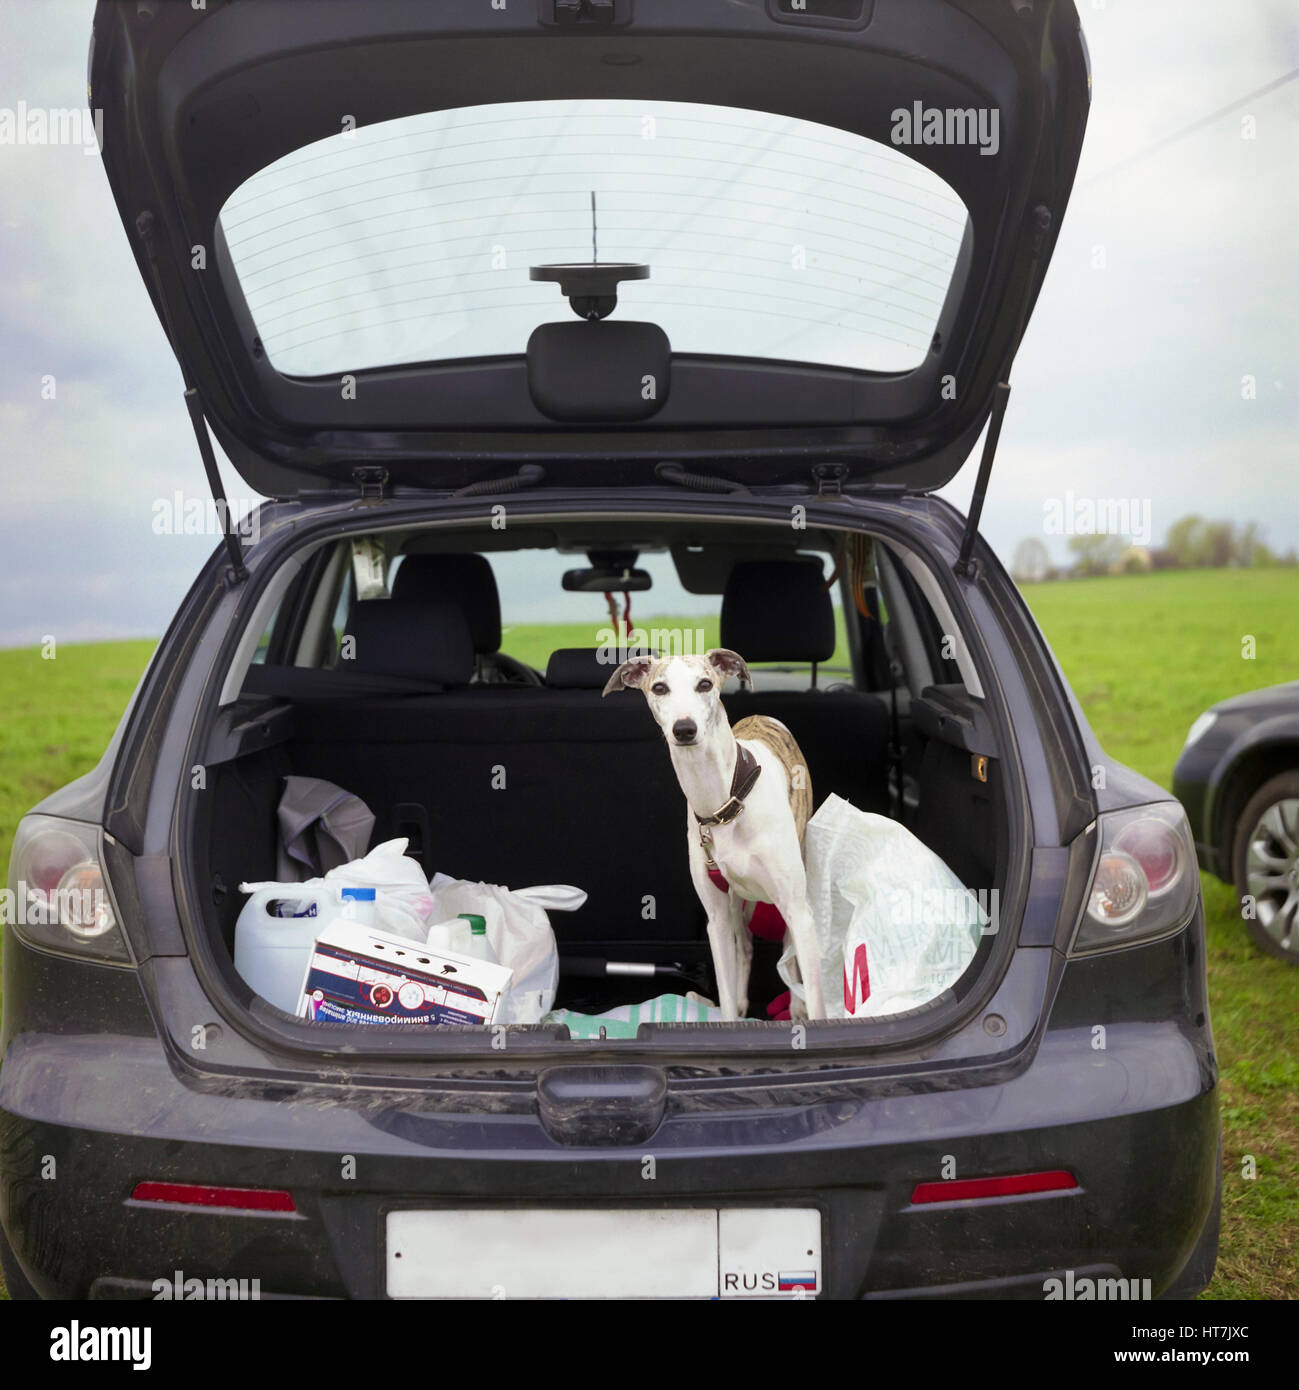 Dog Are Looking Out Of Car Boot - Stock Image